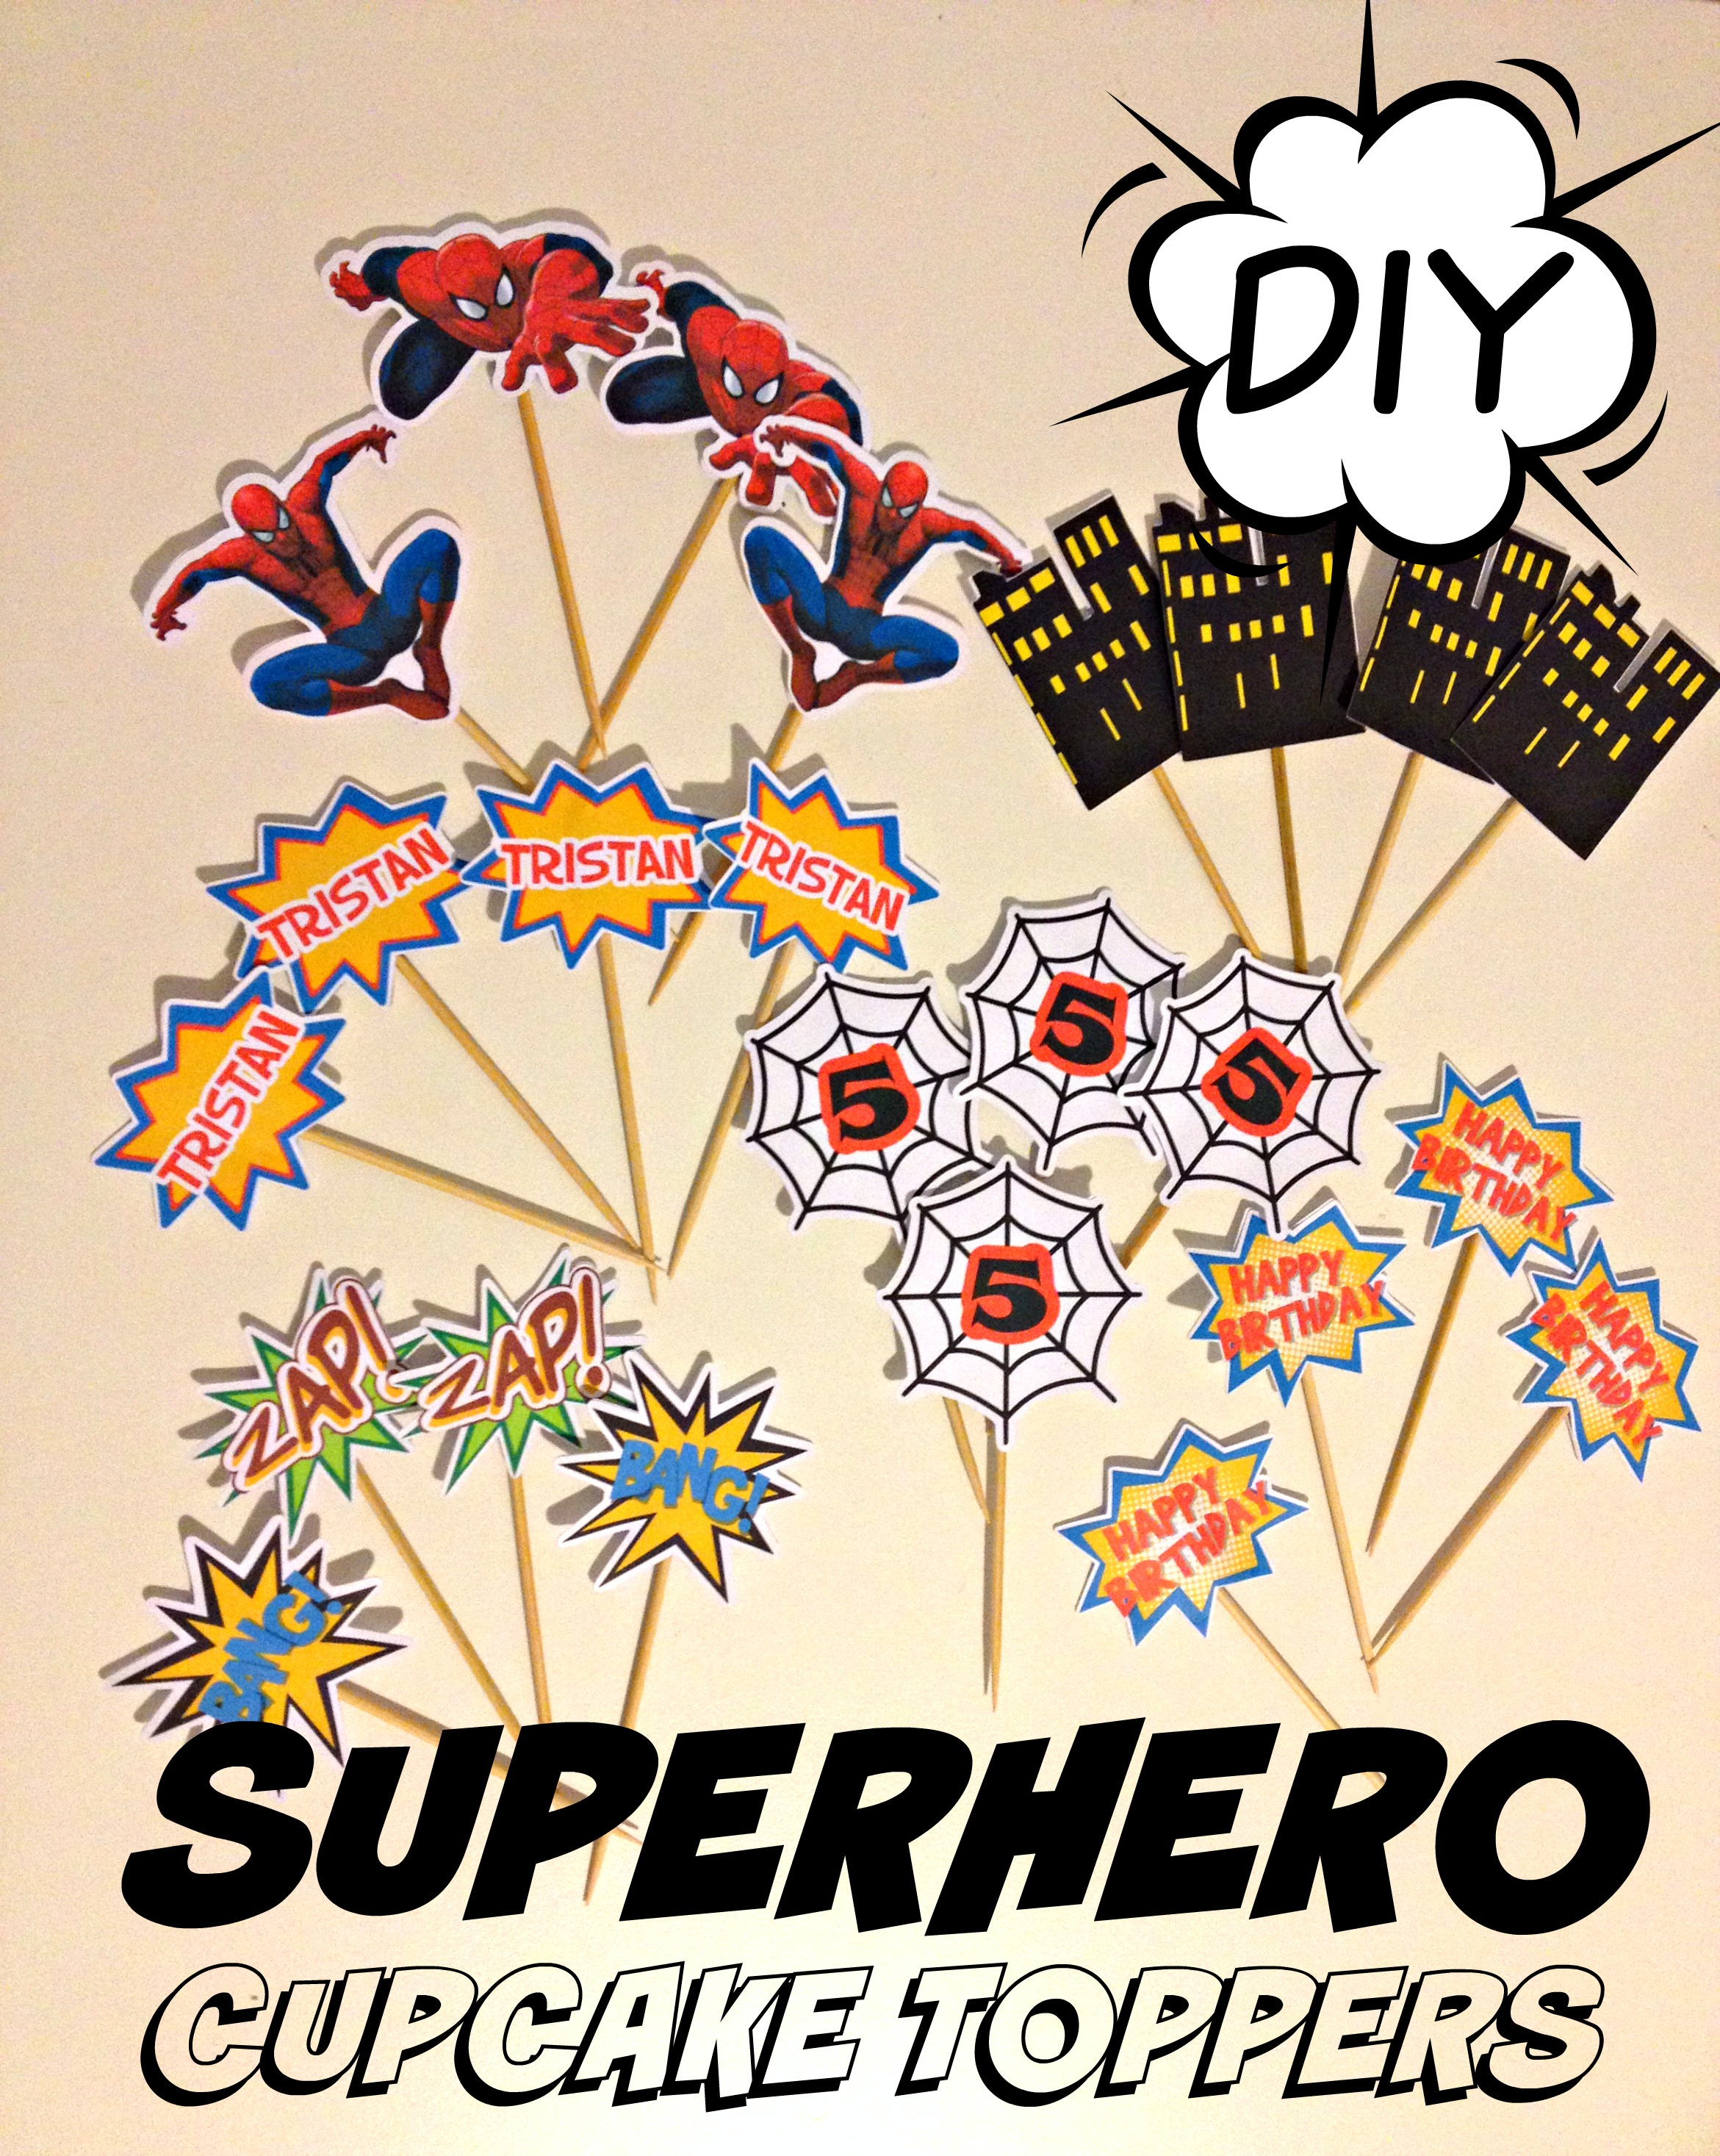 SPIDERMAN SUPERHERO CUPCAKE TOPPERS: DIY HOW TO MAKE AT HOME ...